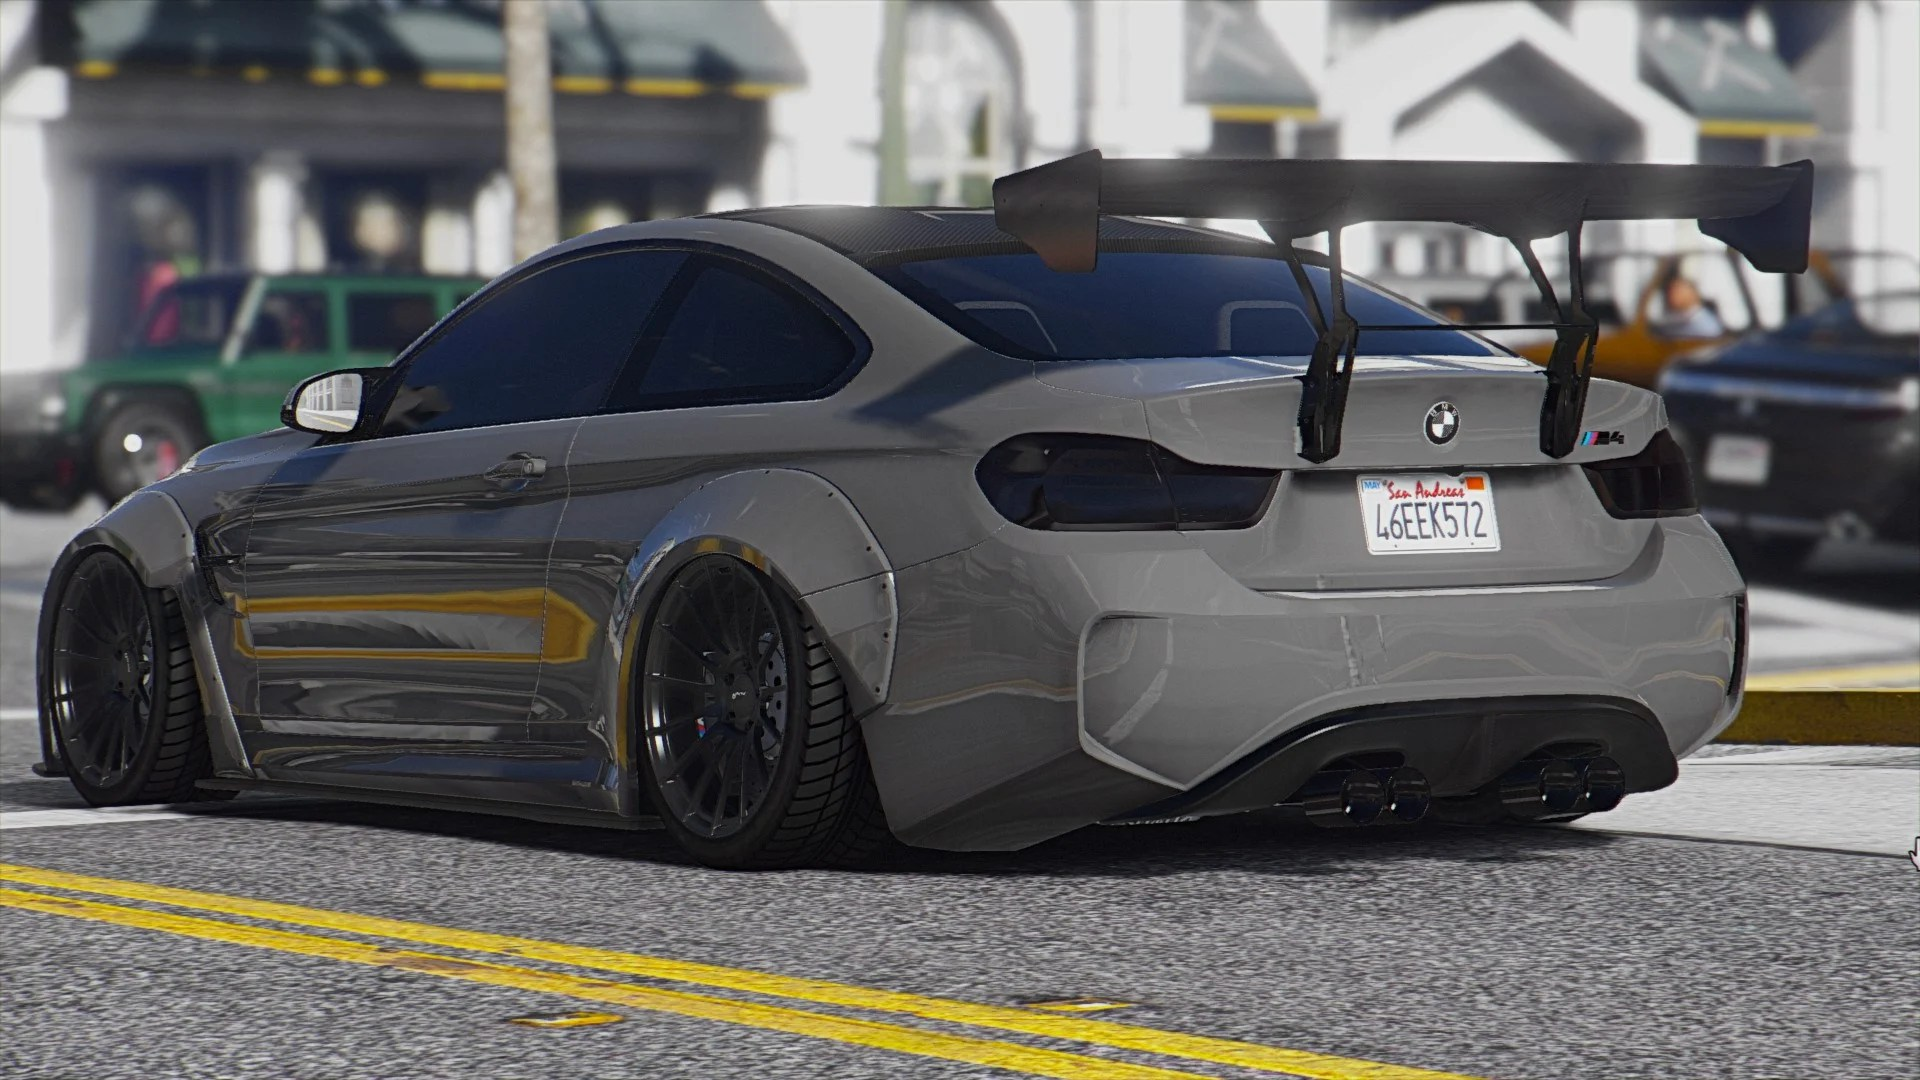 Racing Car Pictures Wallpaper 2015 Bmw F82 M4 Add On Tuning Bodykits Gta5 Mods Com